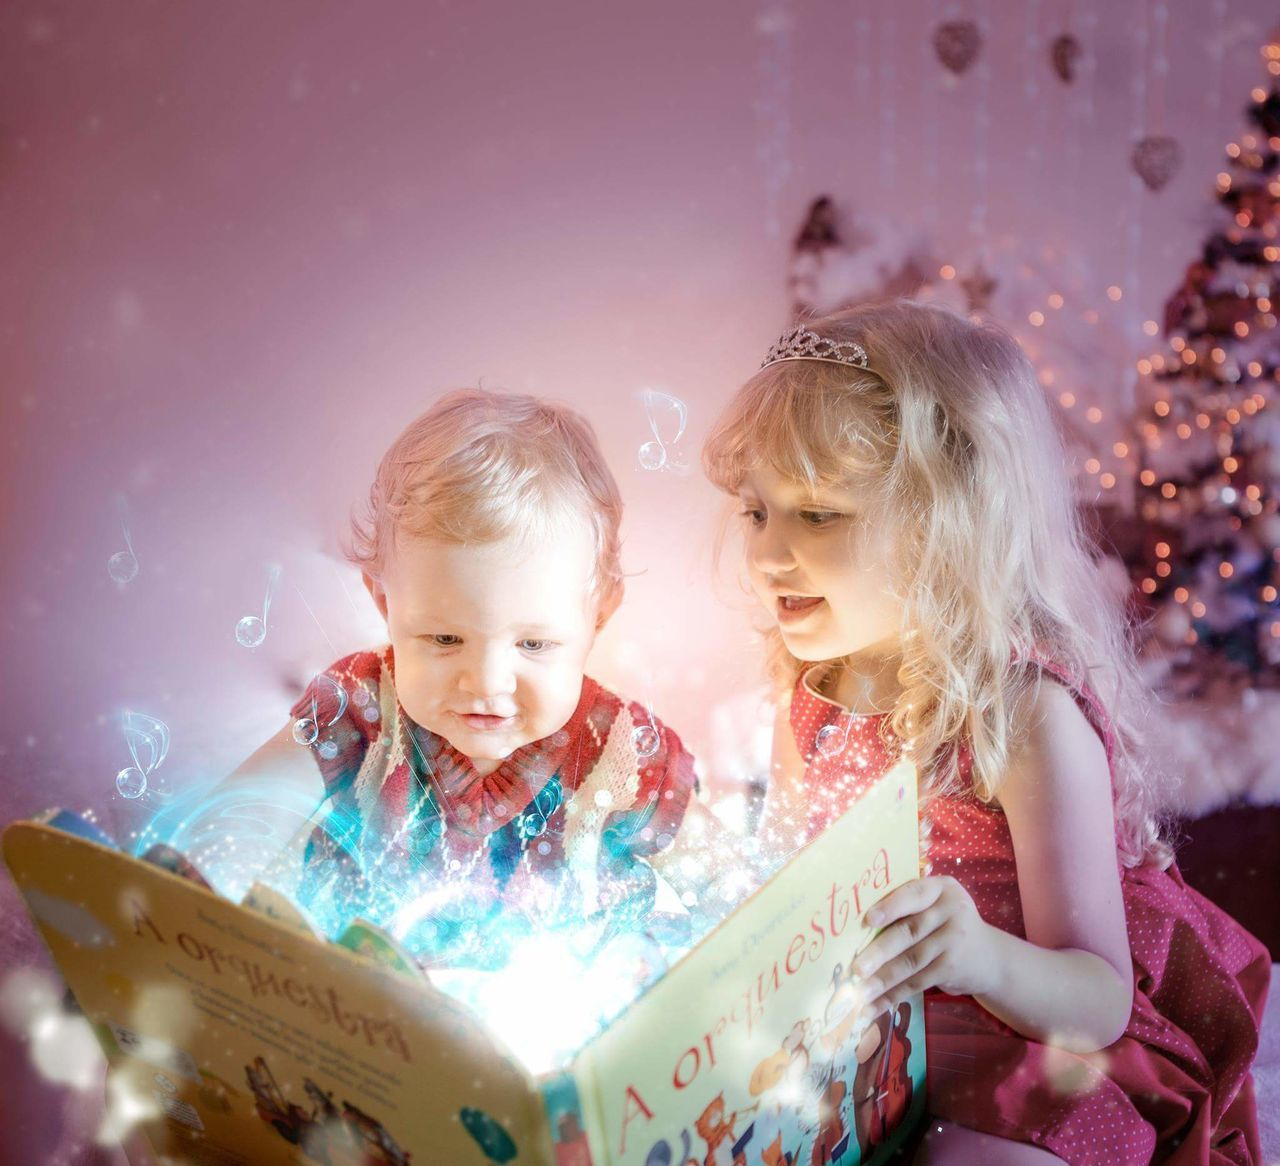 Music.. Cute Studio Shot Babies Natal Marry Christmas Xmas Decorations Orquestra Music Instruments Notas Livro  Books Bookmagic Mágica Alinedeptulsky Happiness Children Only Smiling Blond Hair Long Hair Pretty♡